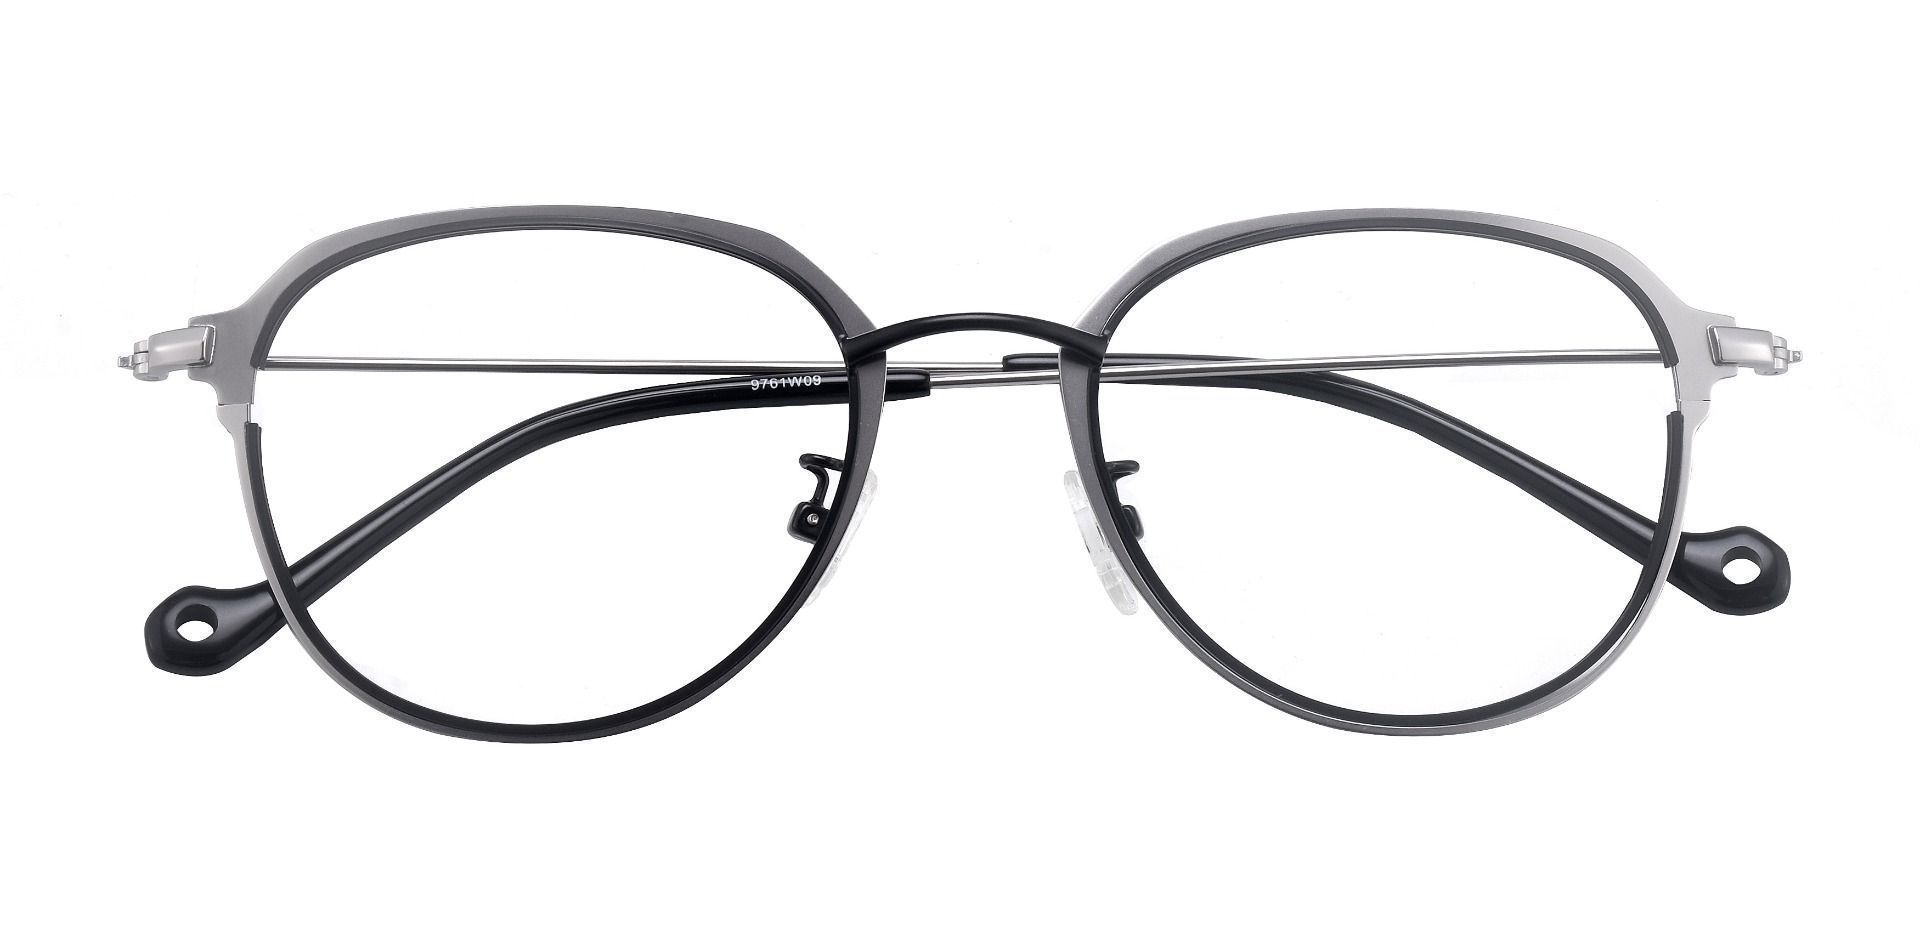 Murray Geometric Blue Light Blocking Glasses - The Frame Is Black And Silvery